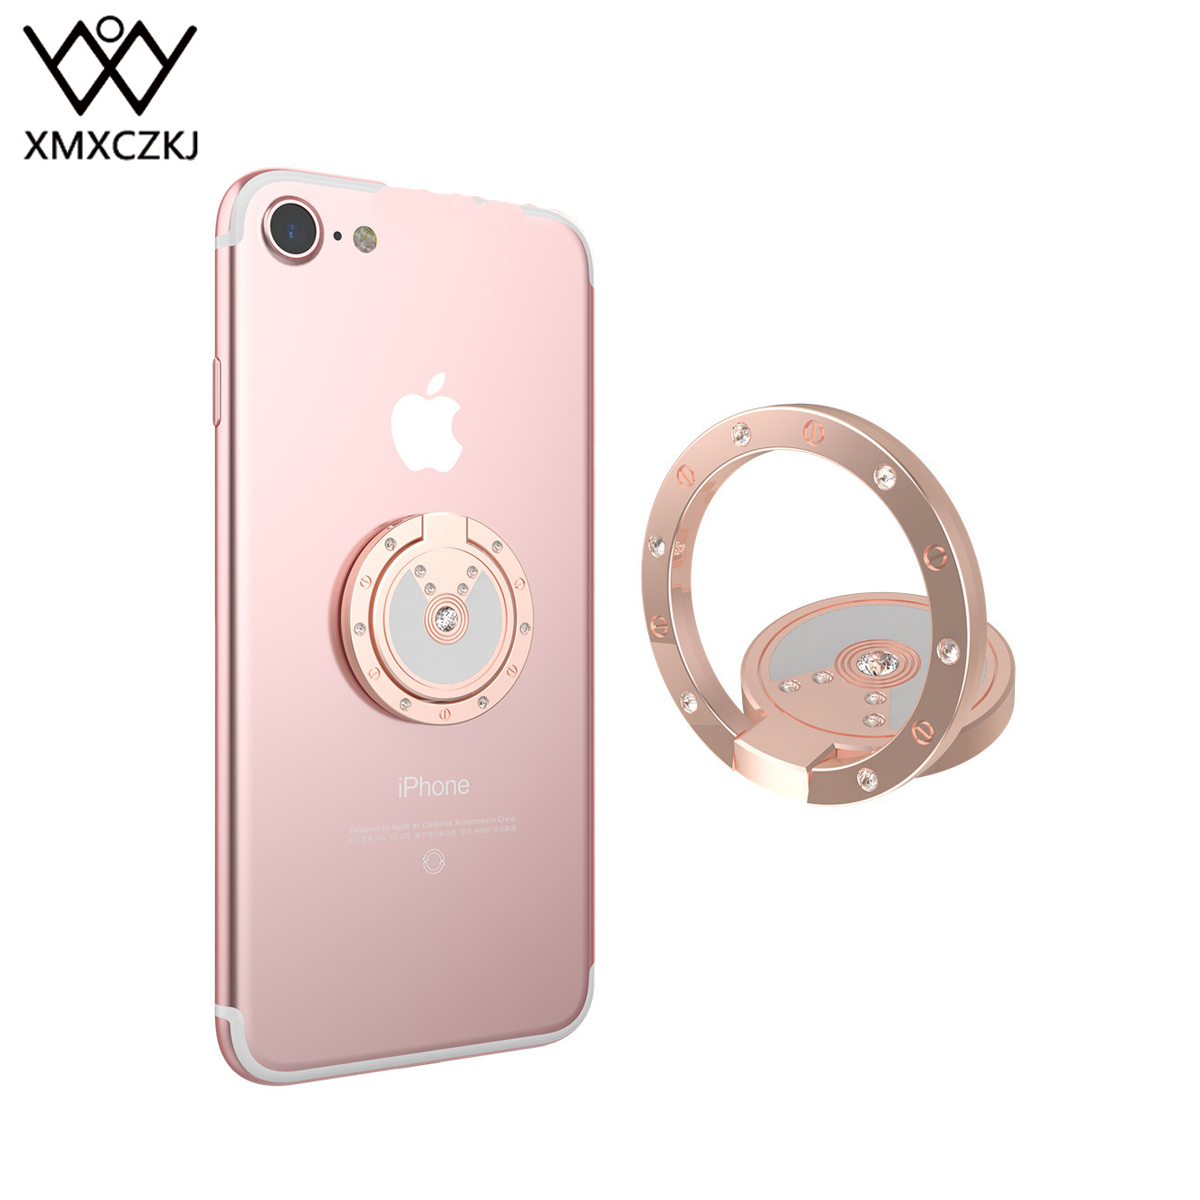 Mobile Phone Accessories Amicable Xmxczkj Desk Finger Ring Cell Mobile Phone Diamond Holder Stand For Iphone Car Magnetic Mount Smartphone 360 Holder Accessories Mobile Phone Holders & Stands